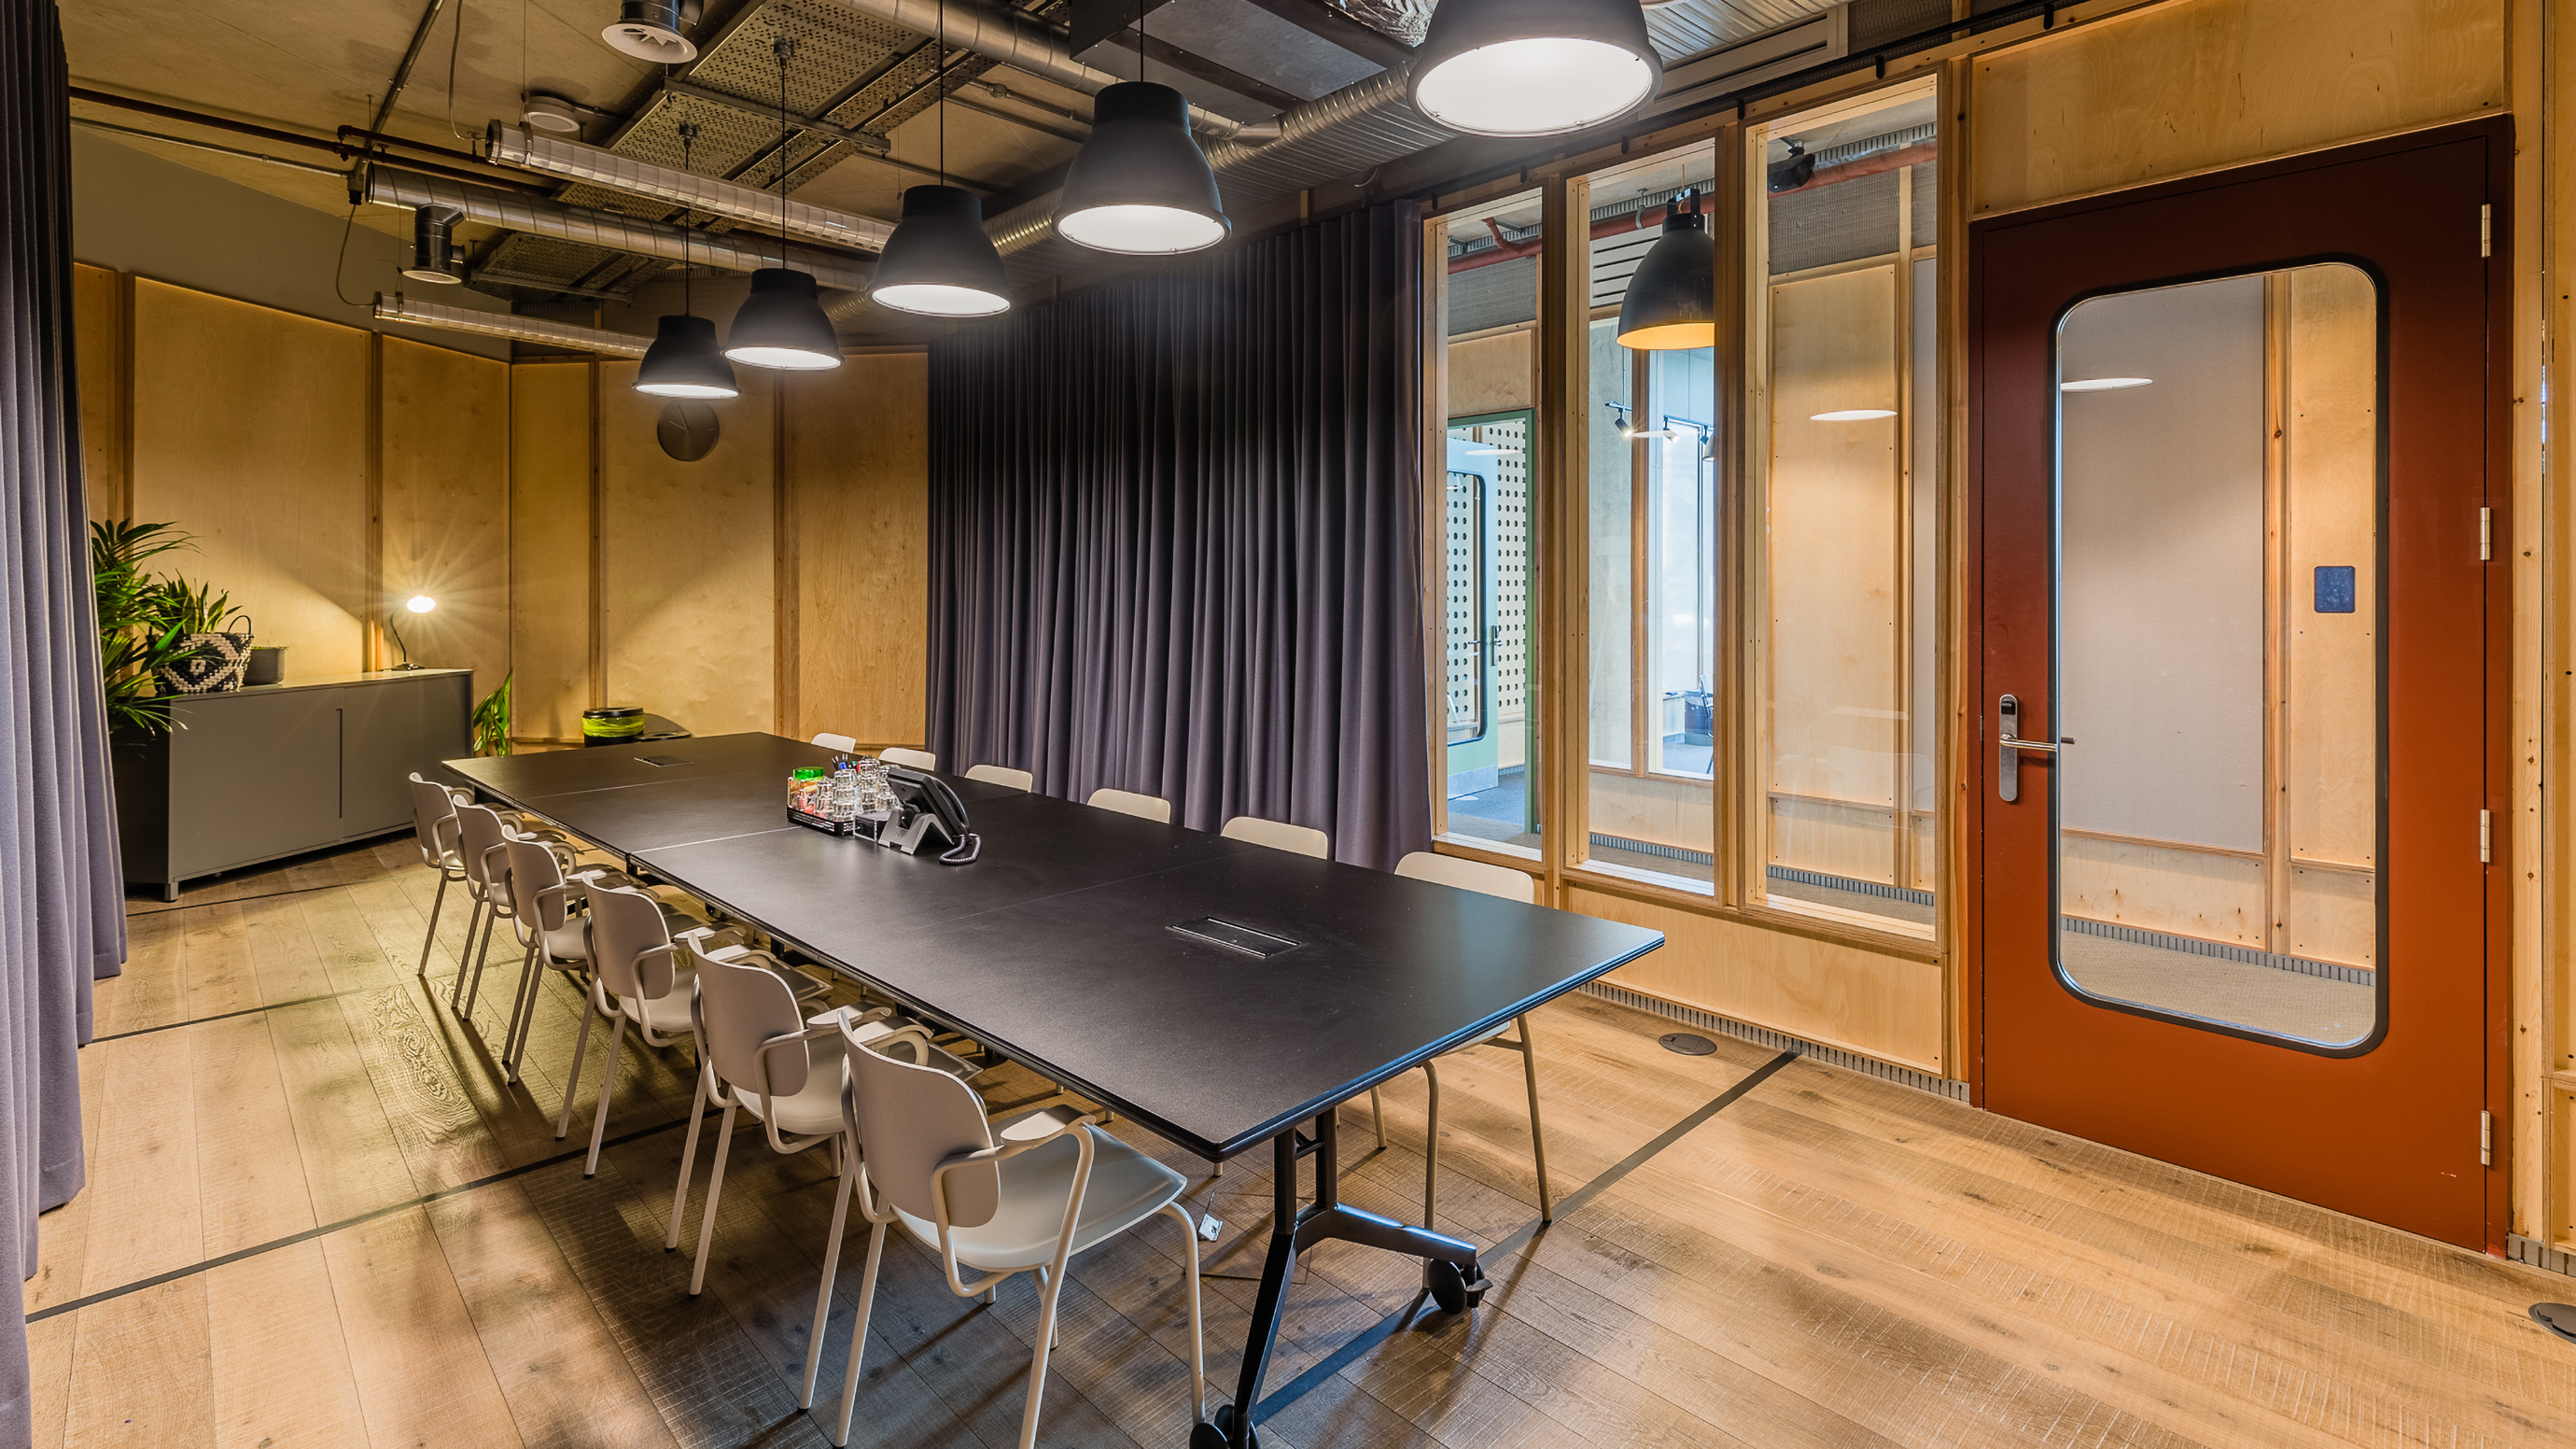 Medium meeting room with dark table and pale chairs and grey curtain and wooden floorboards at TOG building White Collar Factory London